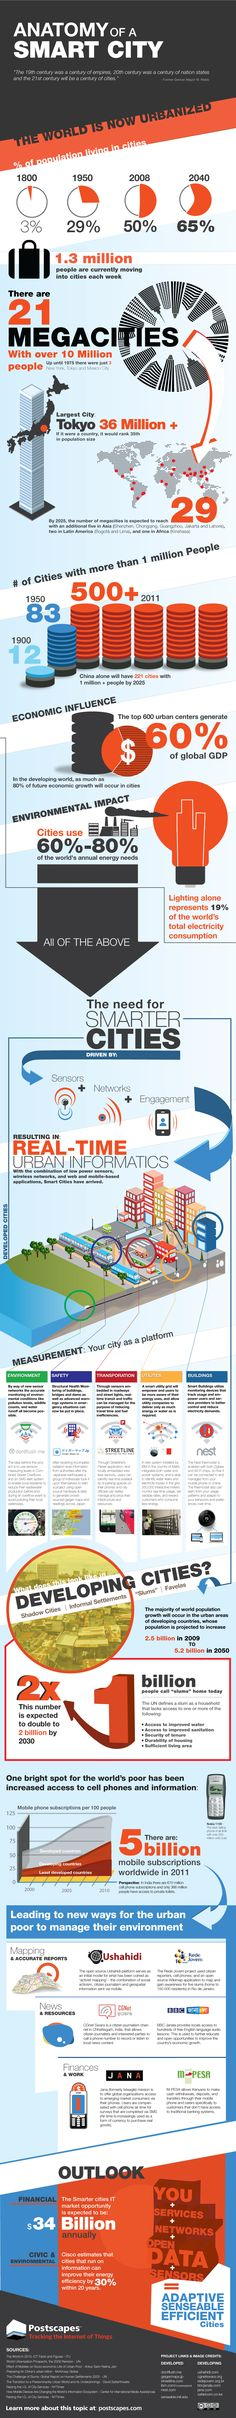 Anatomy of a Smart City